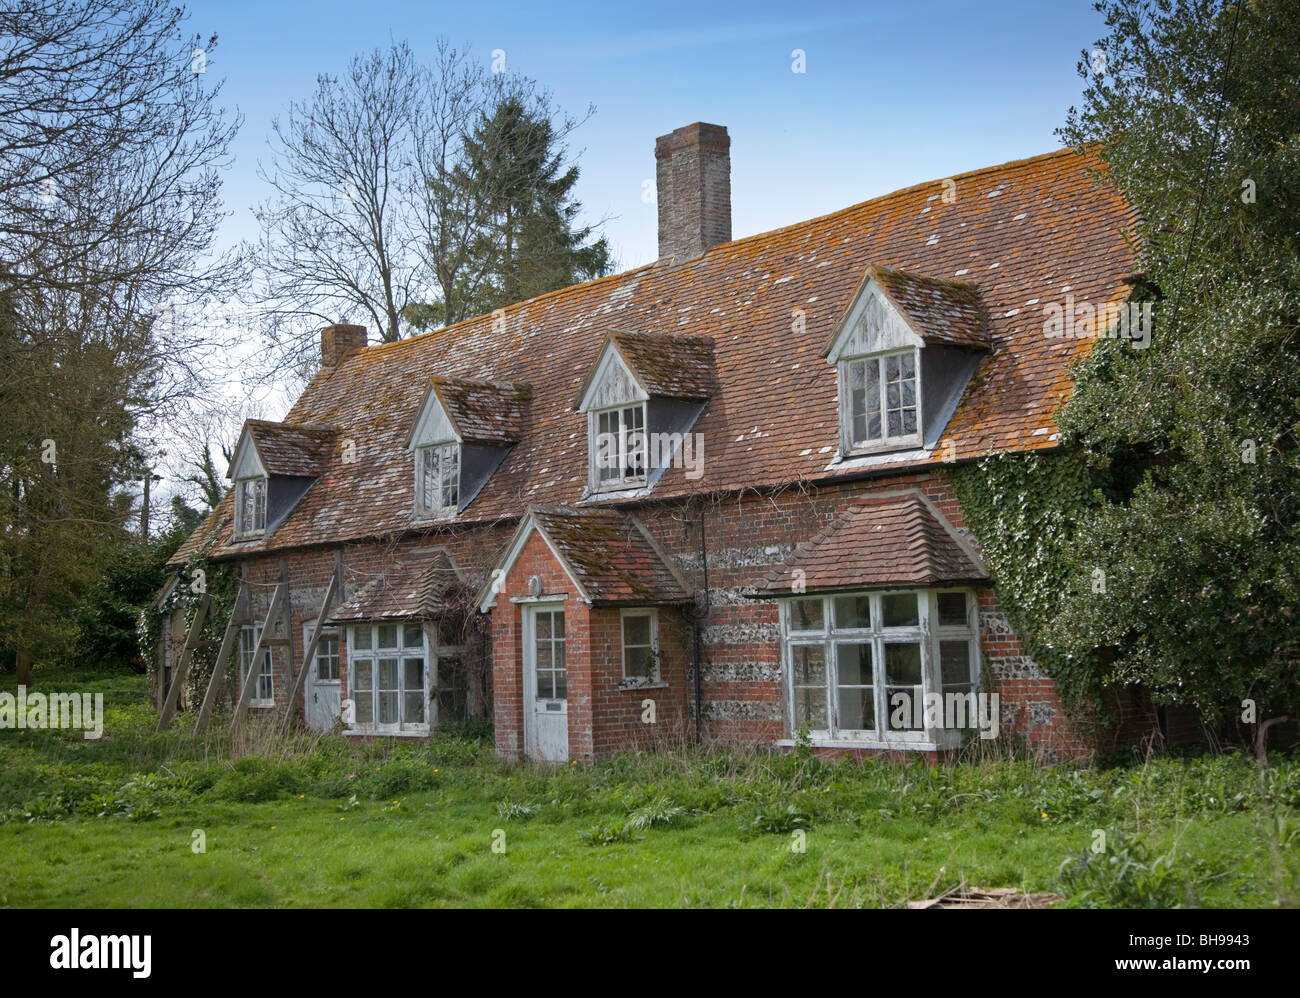 Derelict Cottage in Hampshire, England - Stock Image